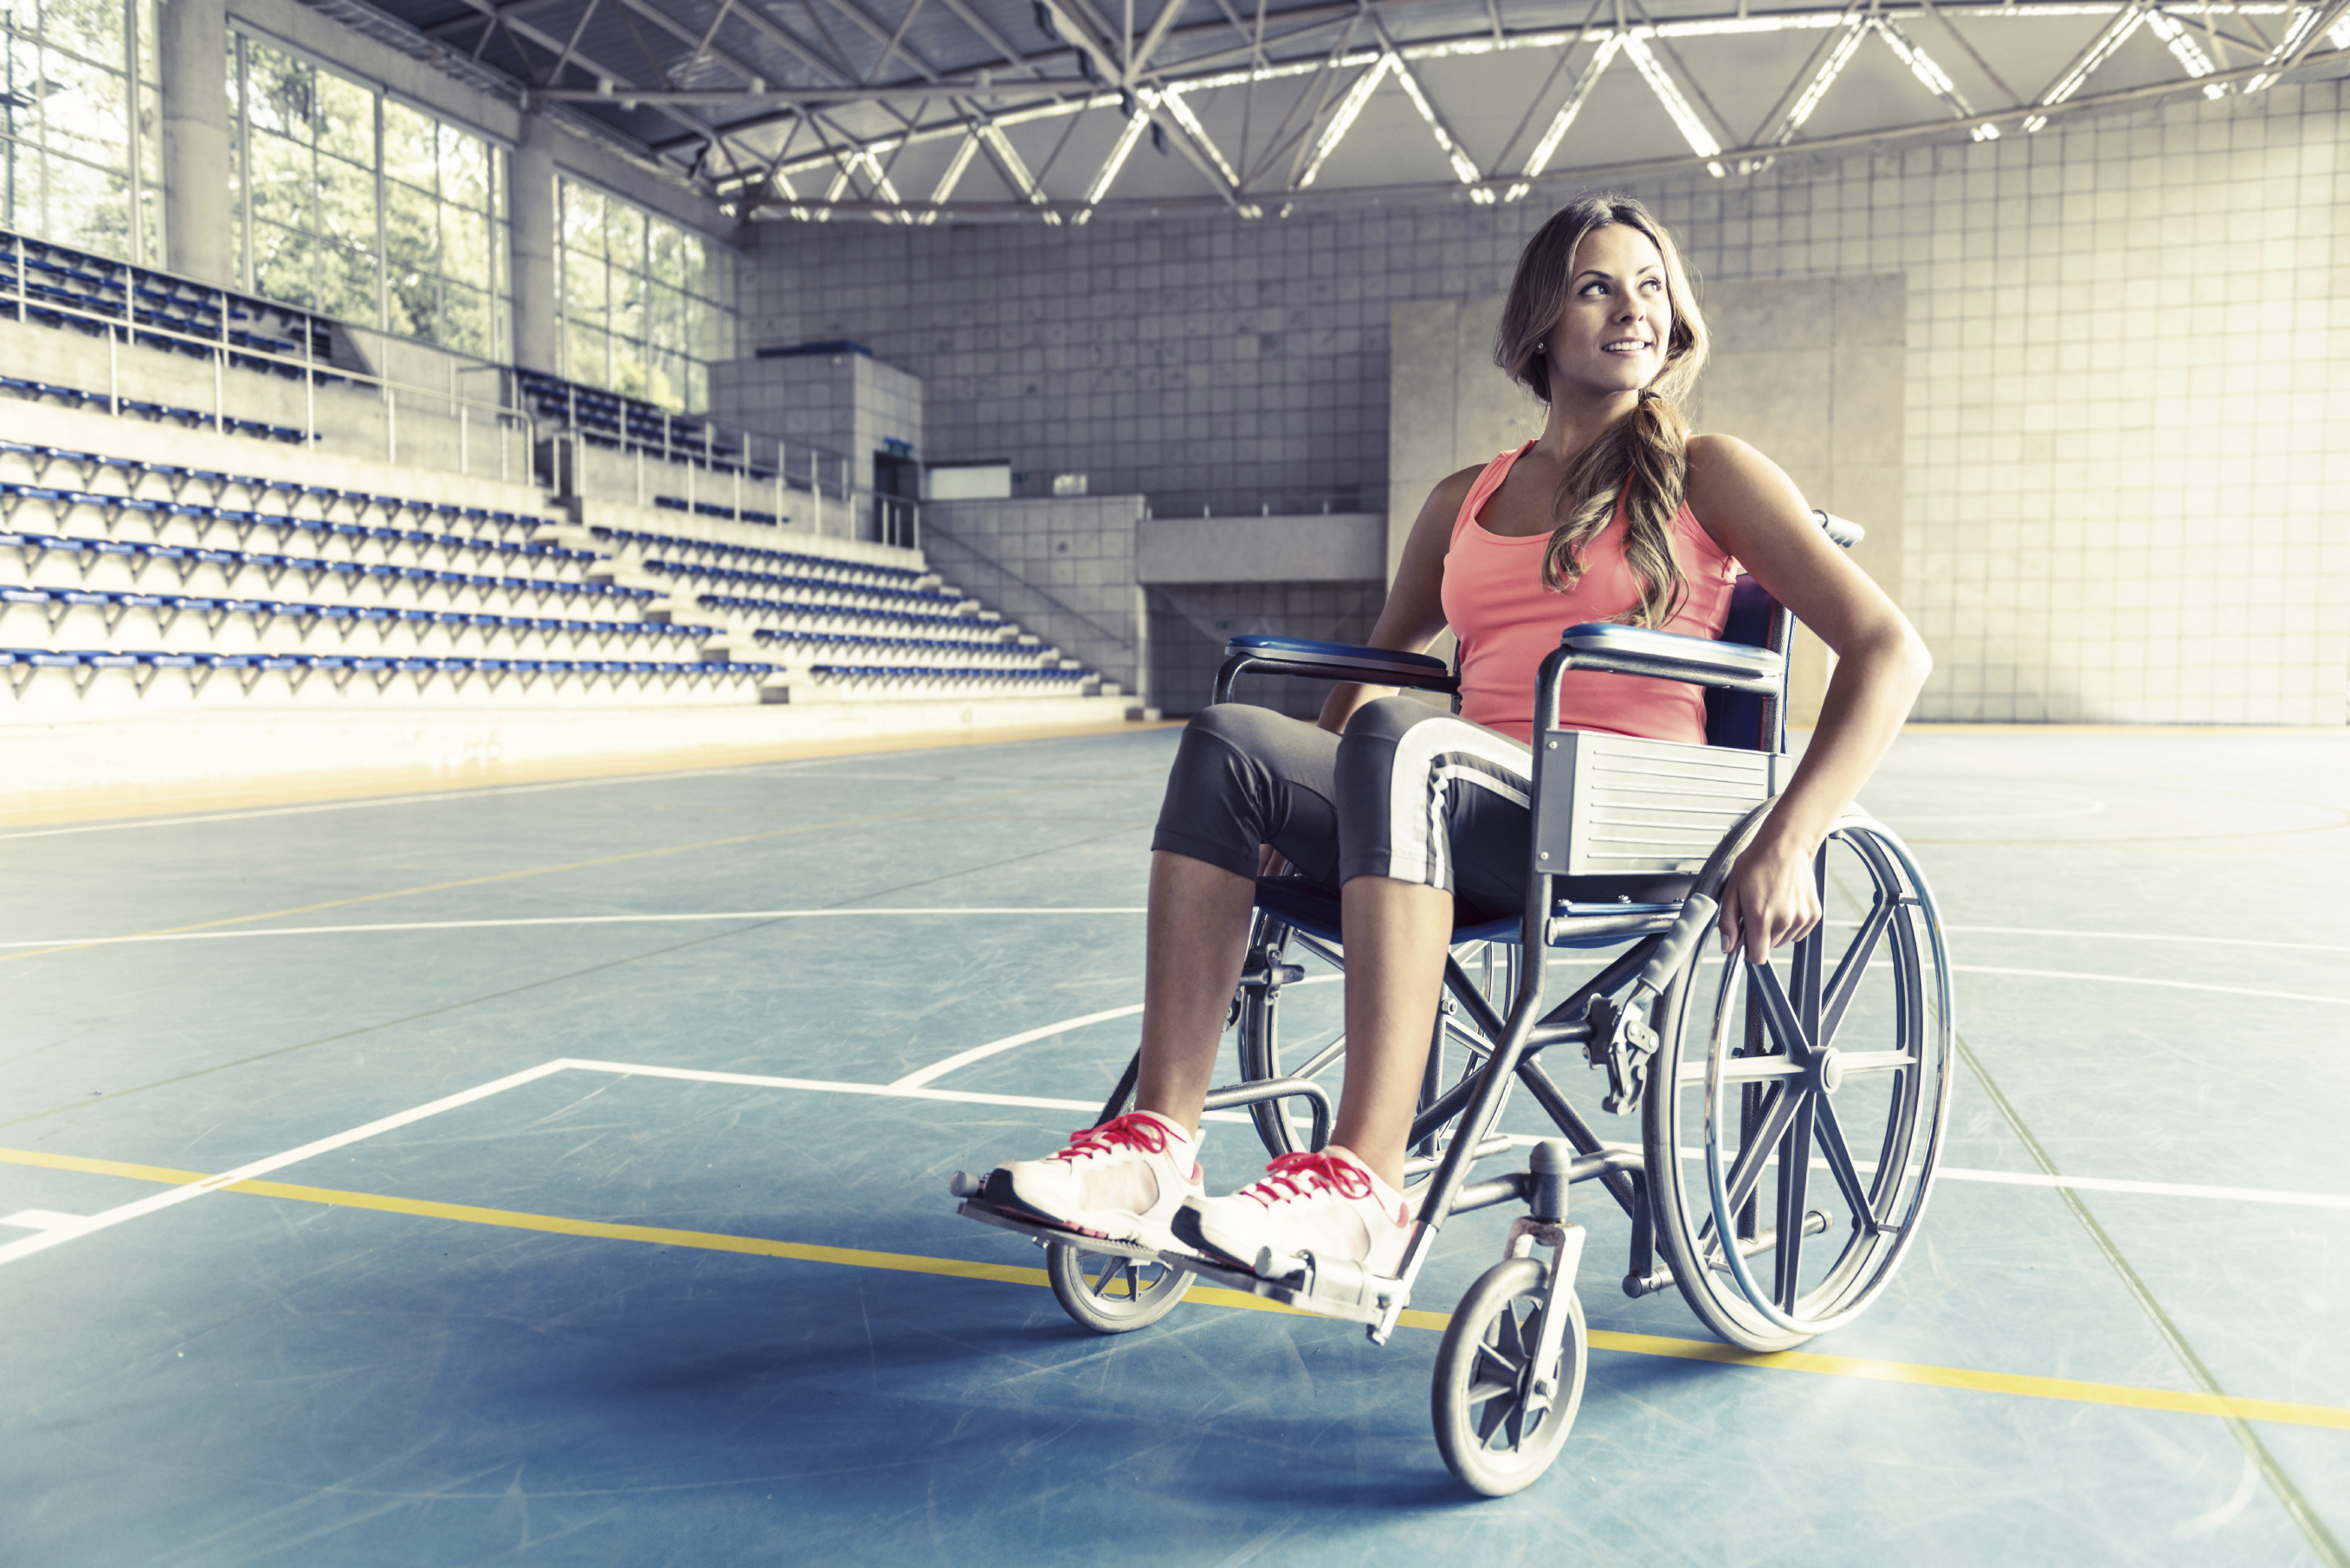 Injured sports woman in a wheelchair at a basketball court